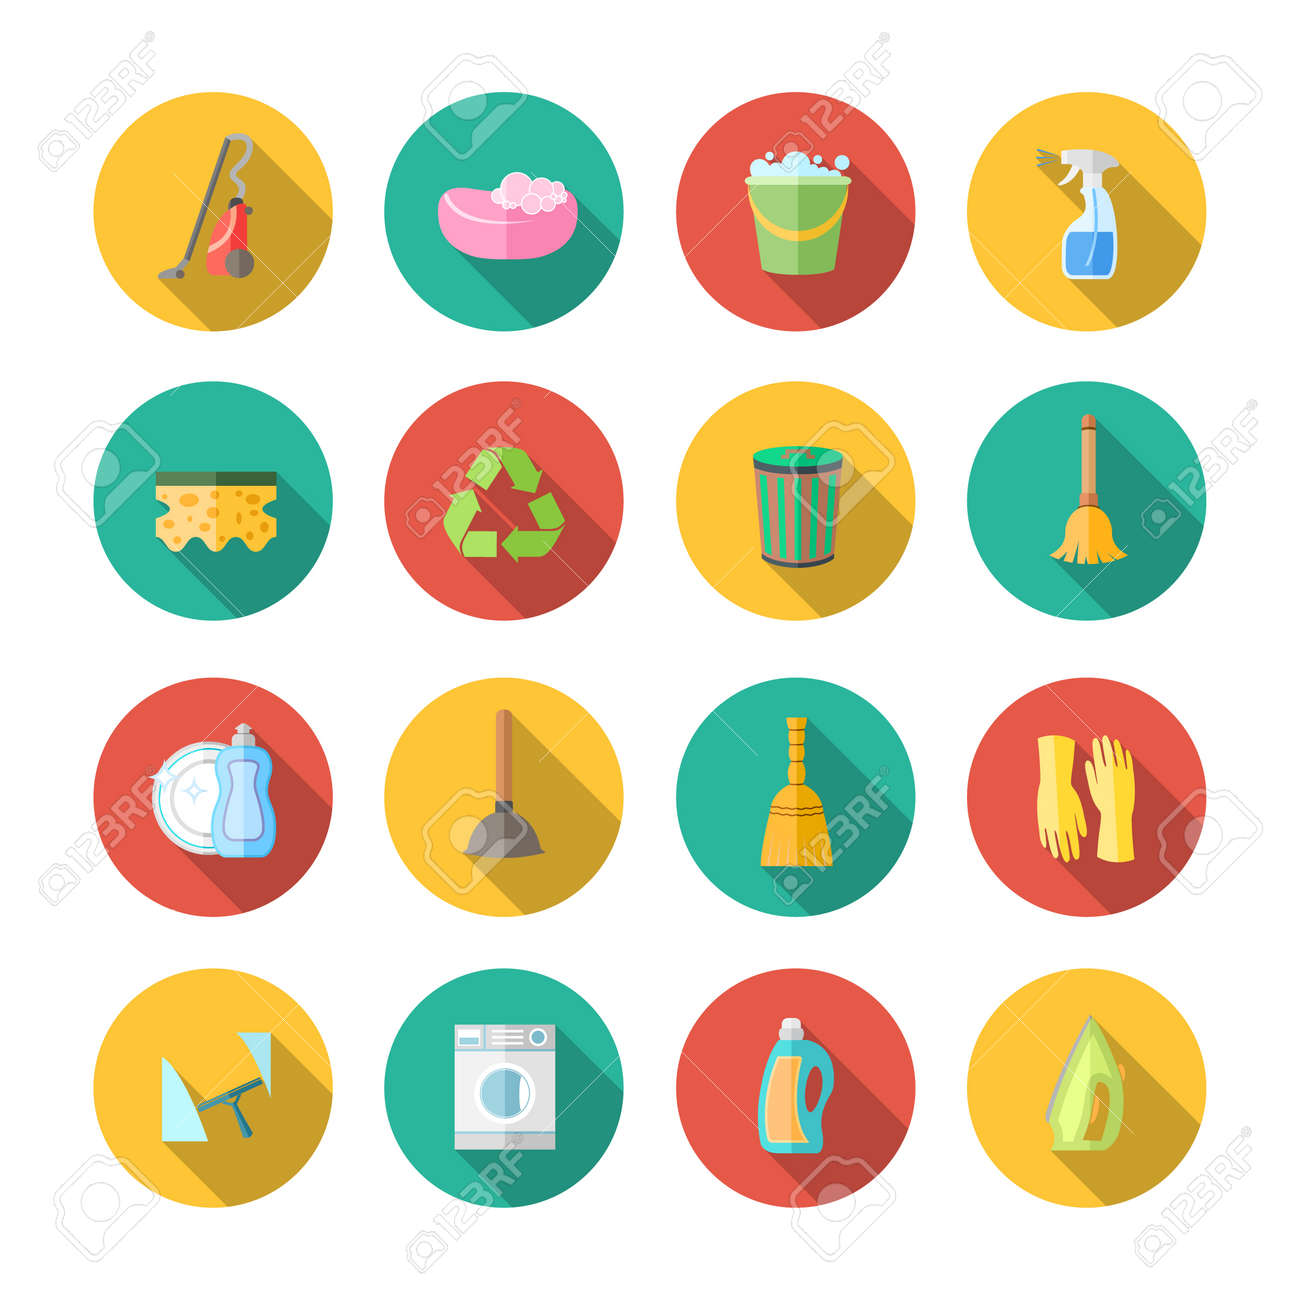 Cleaning dusting and sanitation icons set of can bucket spray plunger isolated vector illustration - 167078930